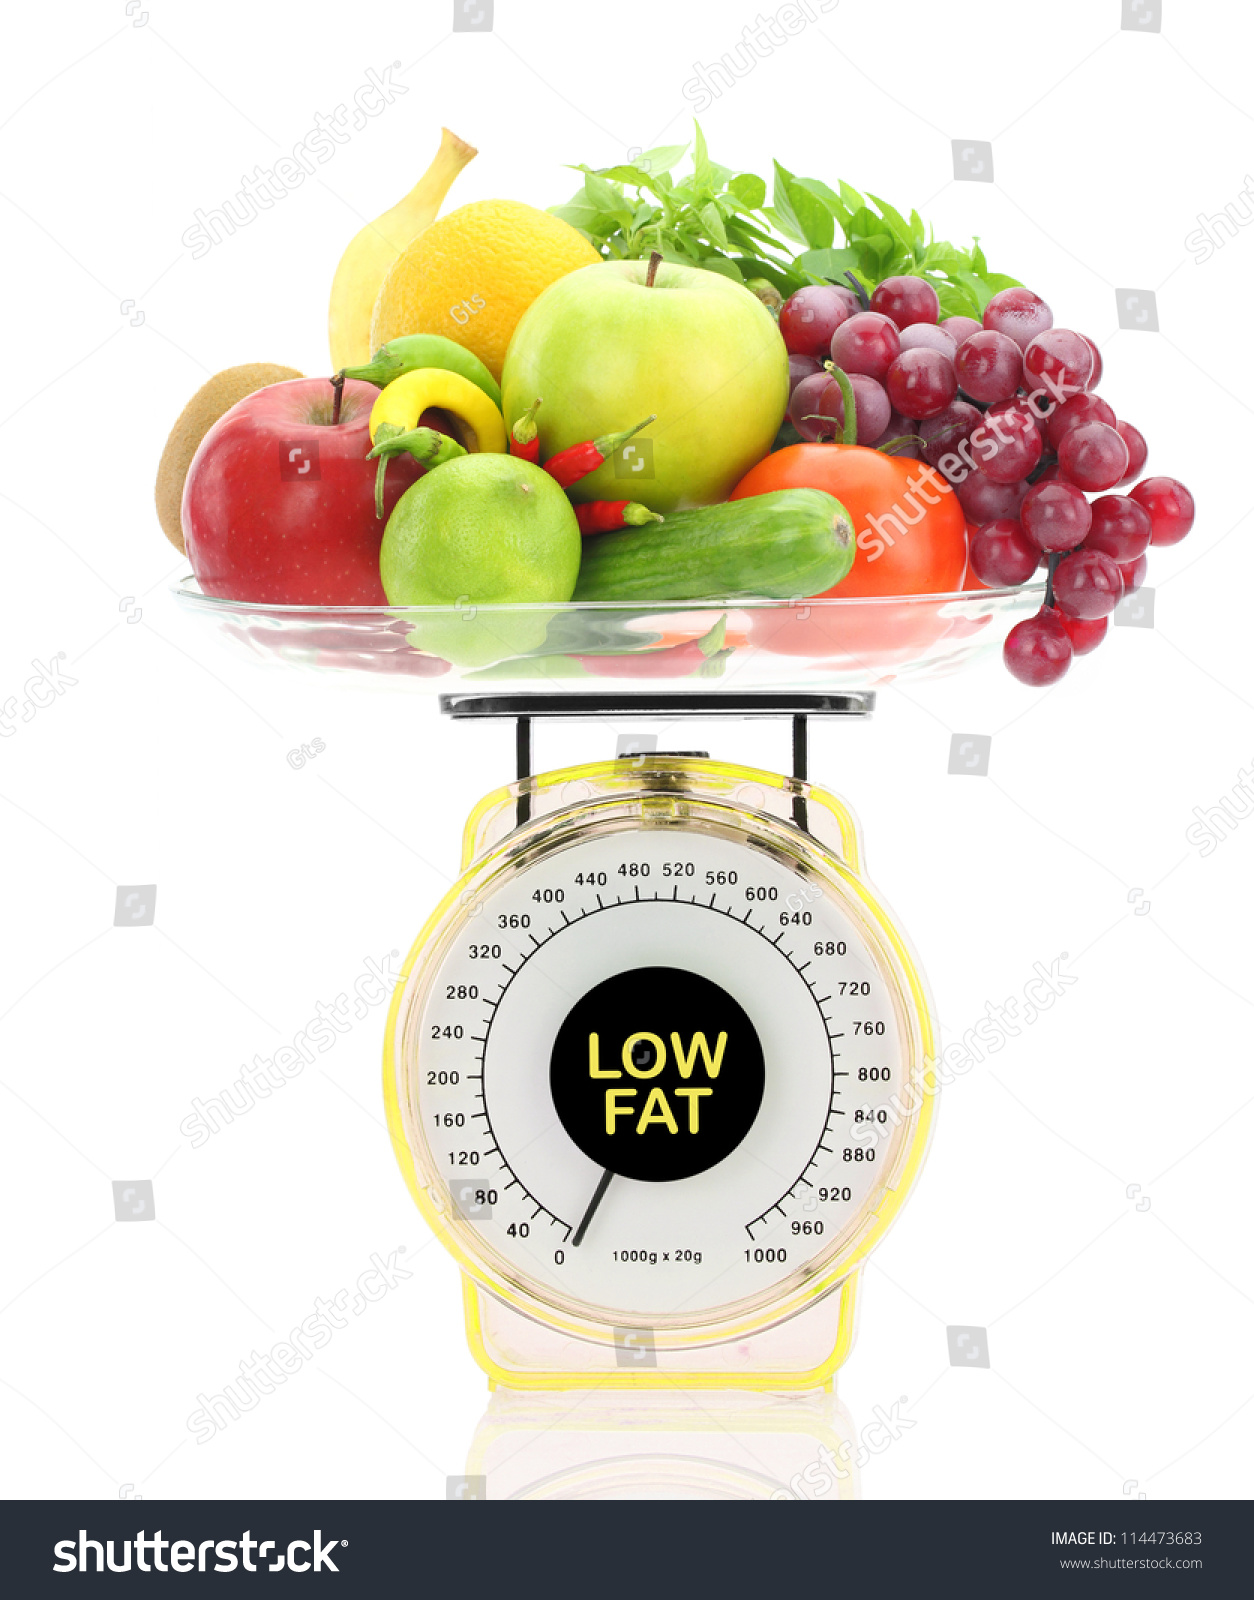 Low Fat Fruits And Vegetables 19